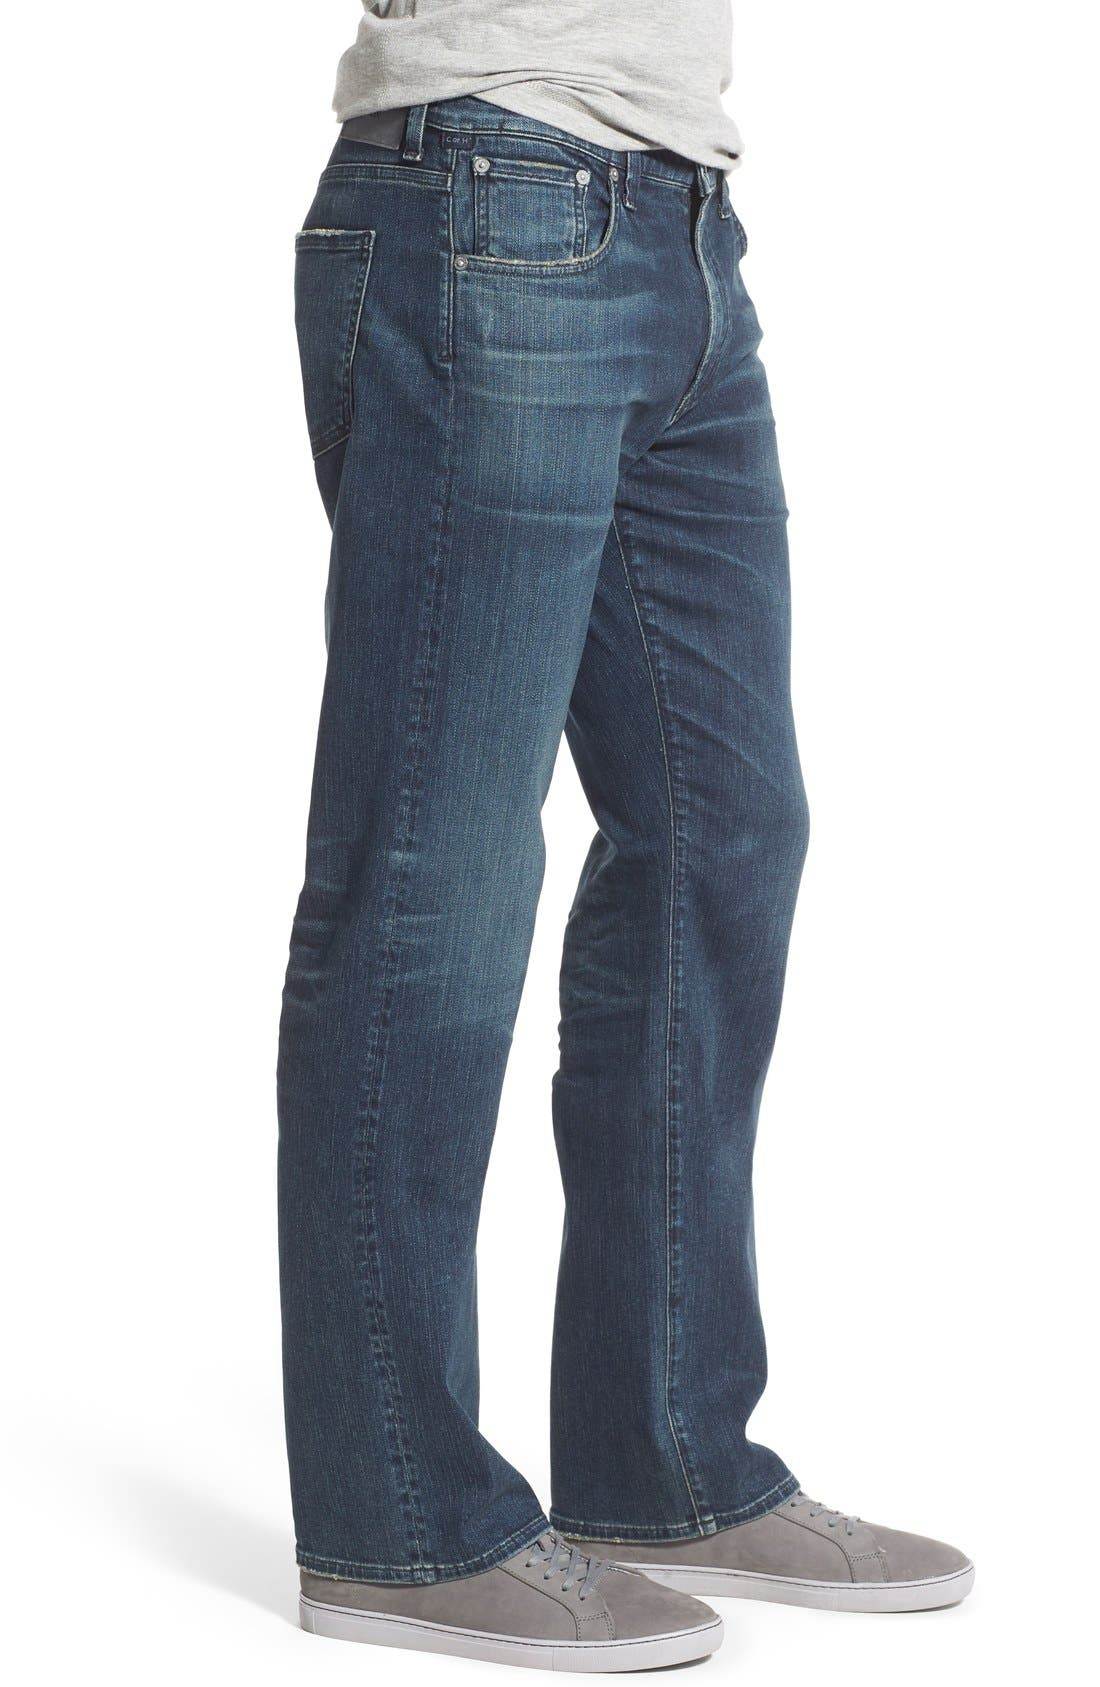 PERFORM - Sid Straight Leg Jeans,                             Alternate thumbnail 10, color,                             NORLAND